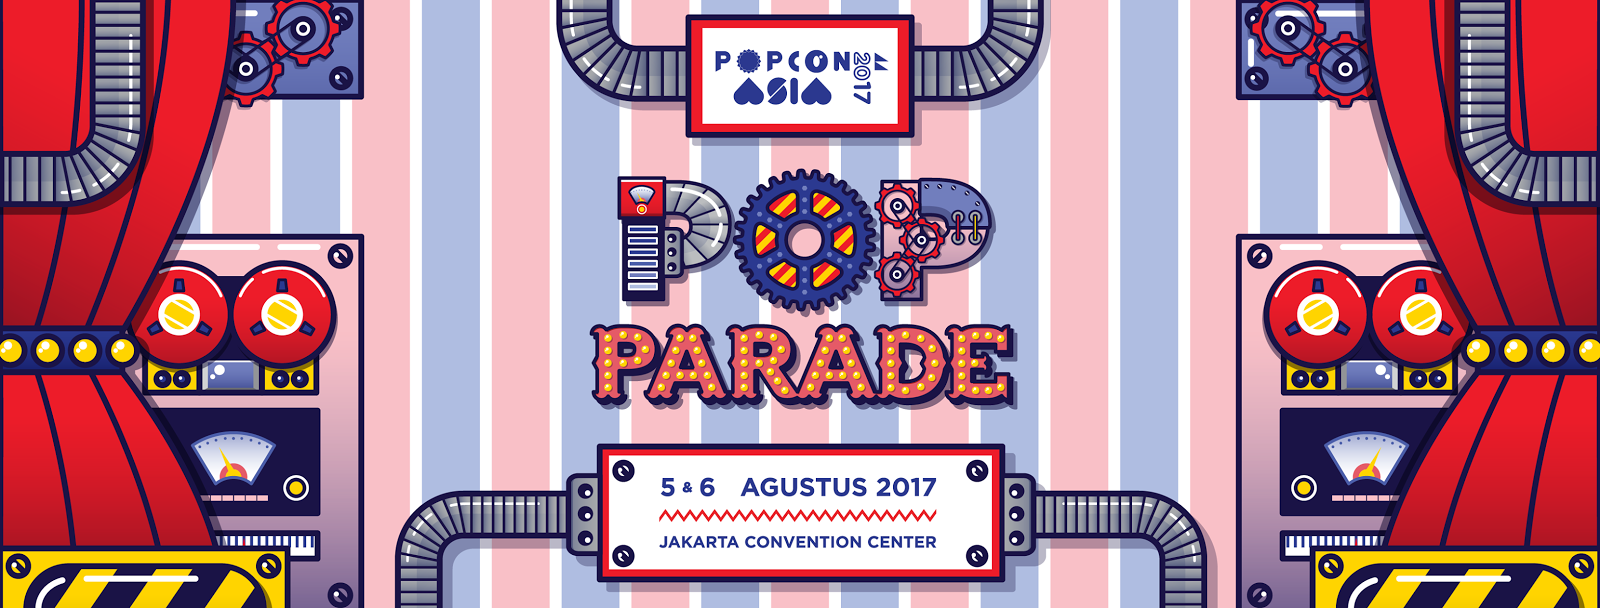 Pop Parade | Popcon Asia 2017